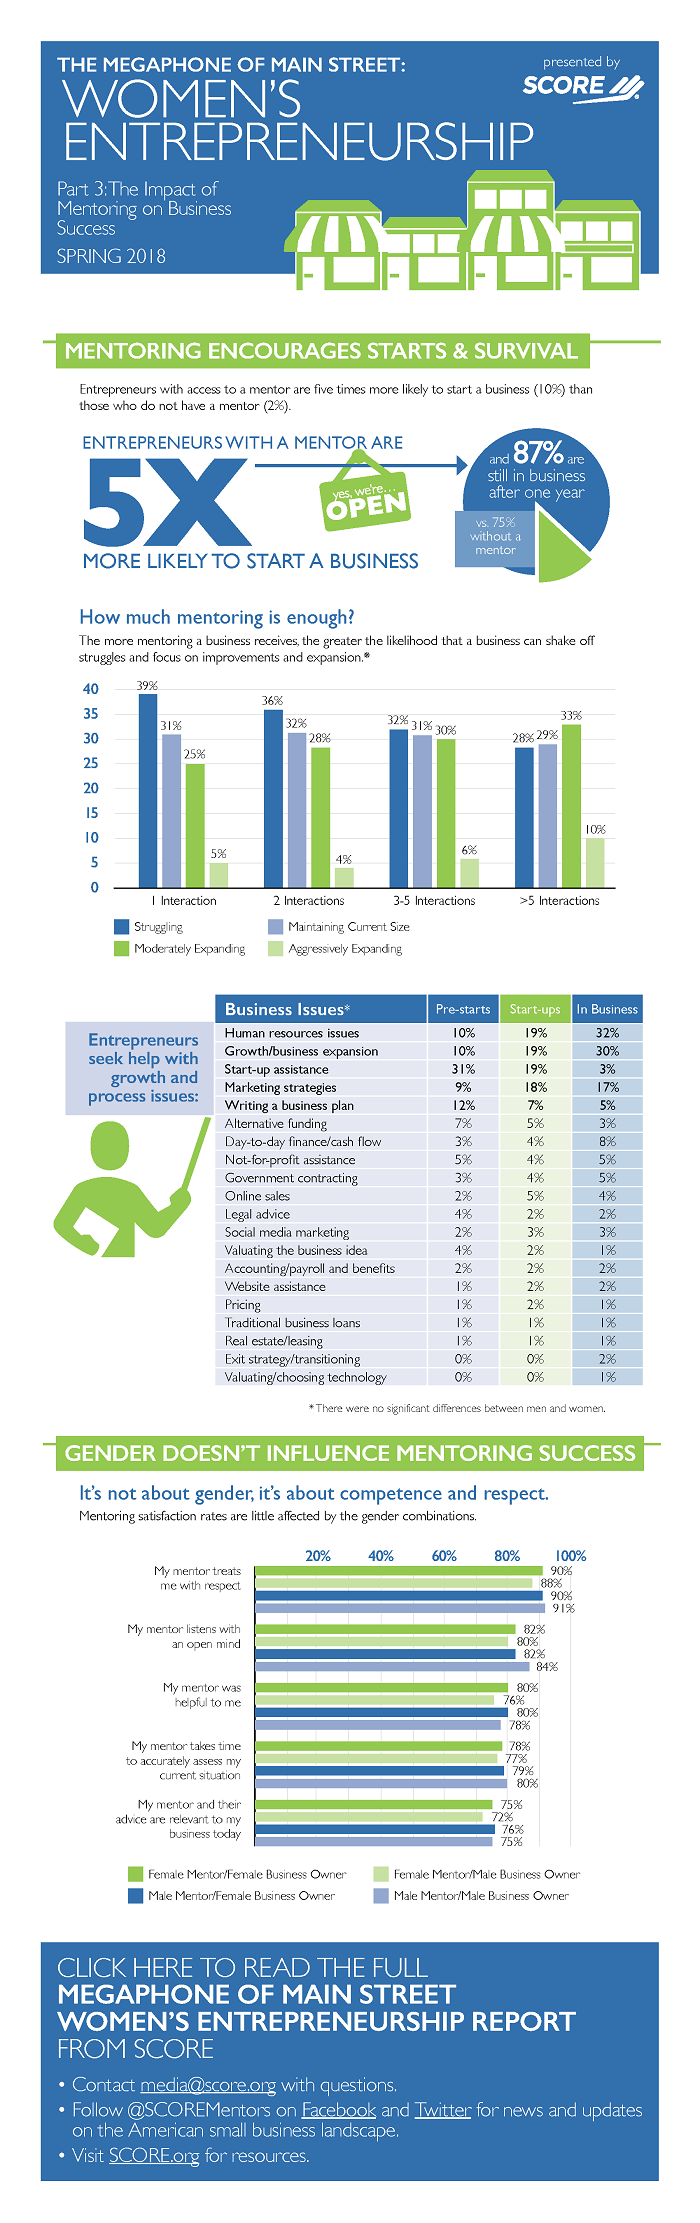 The Megaphone of Main Street: Women's Entrepreneurship, Infographic #3: The Impact of Mentoring on Business Success